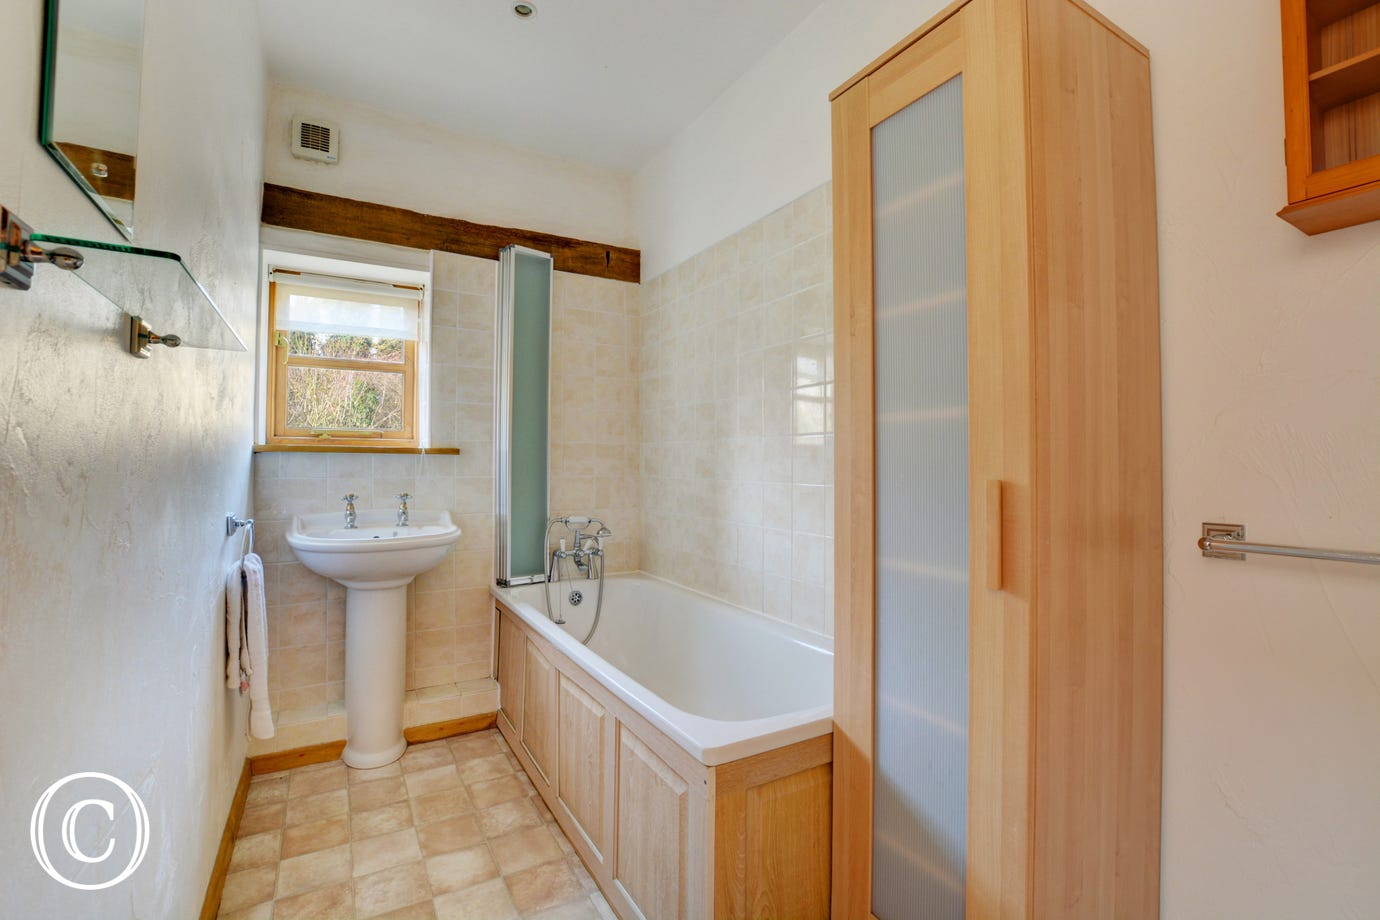 The bathroom is on the first floor and has a white suite and pale wood cupboards